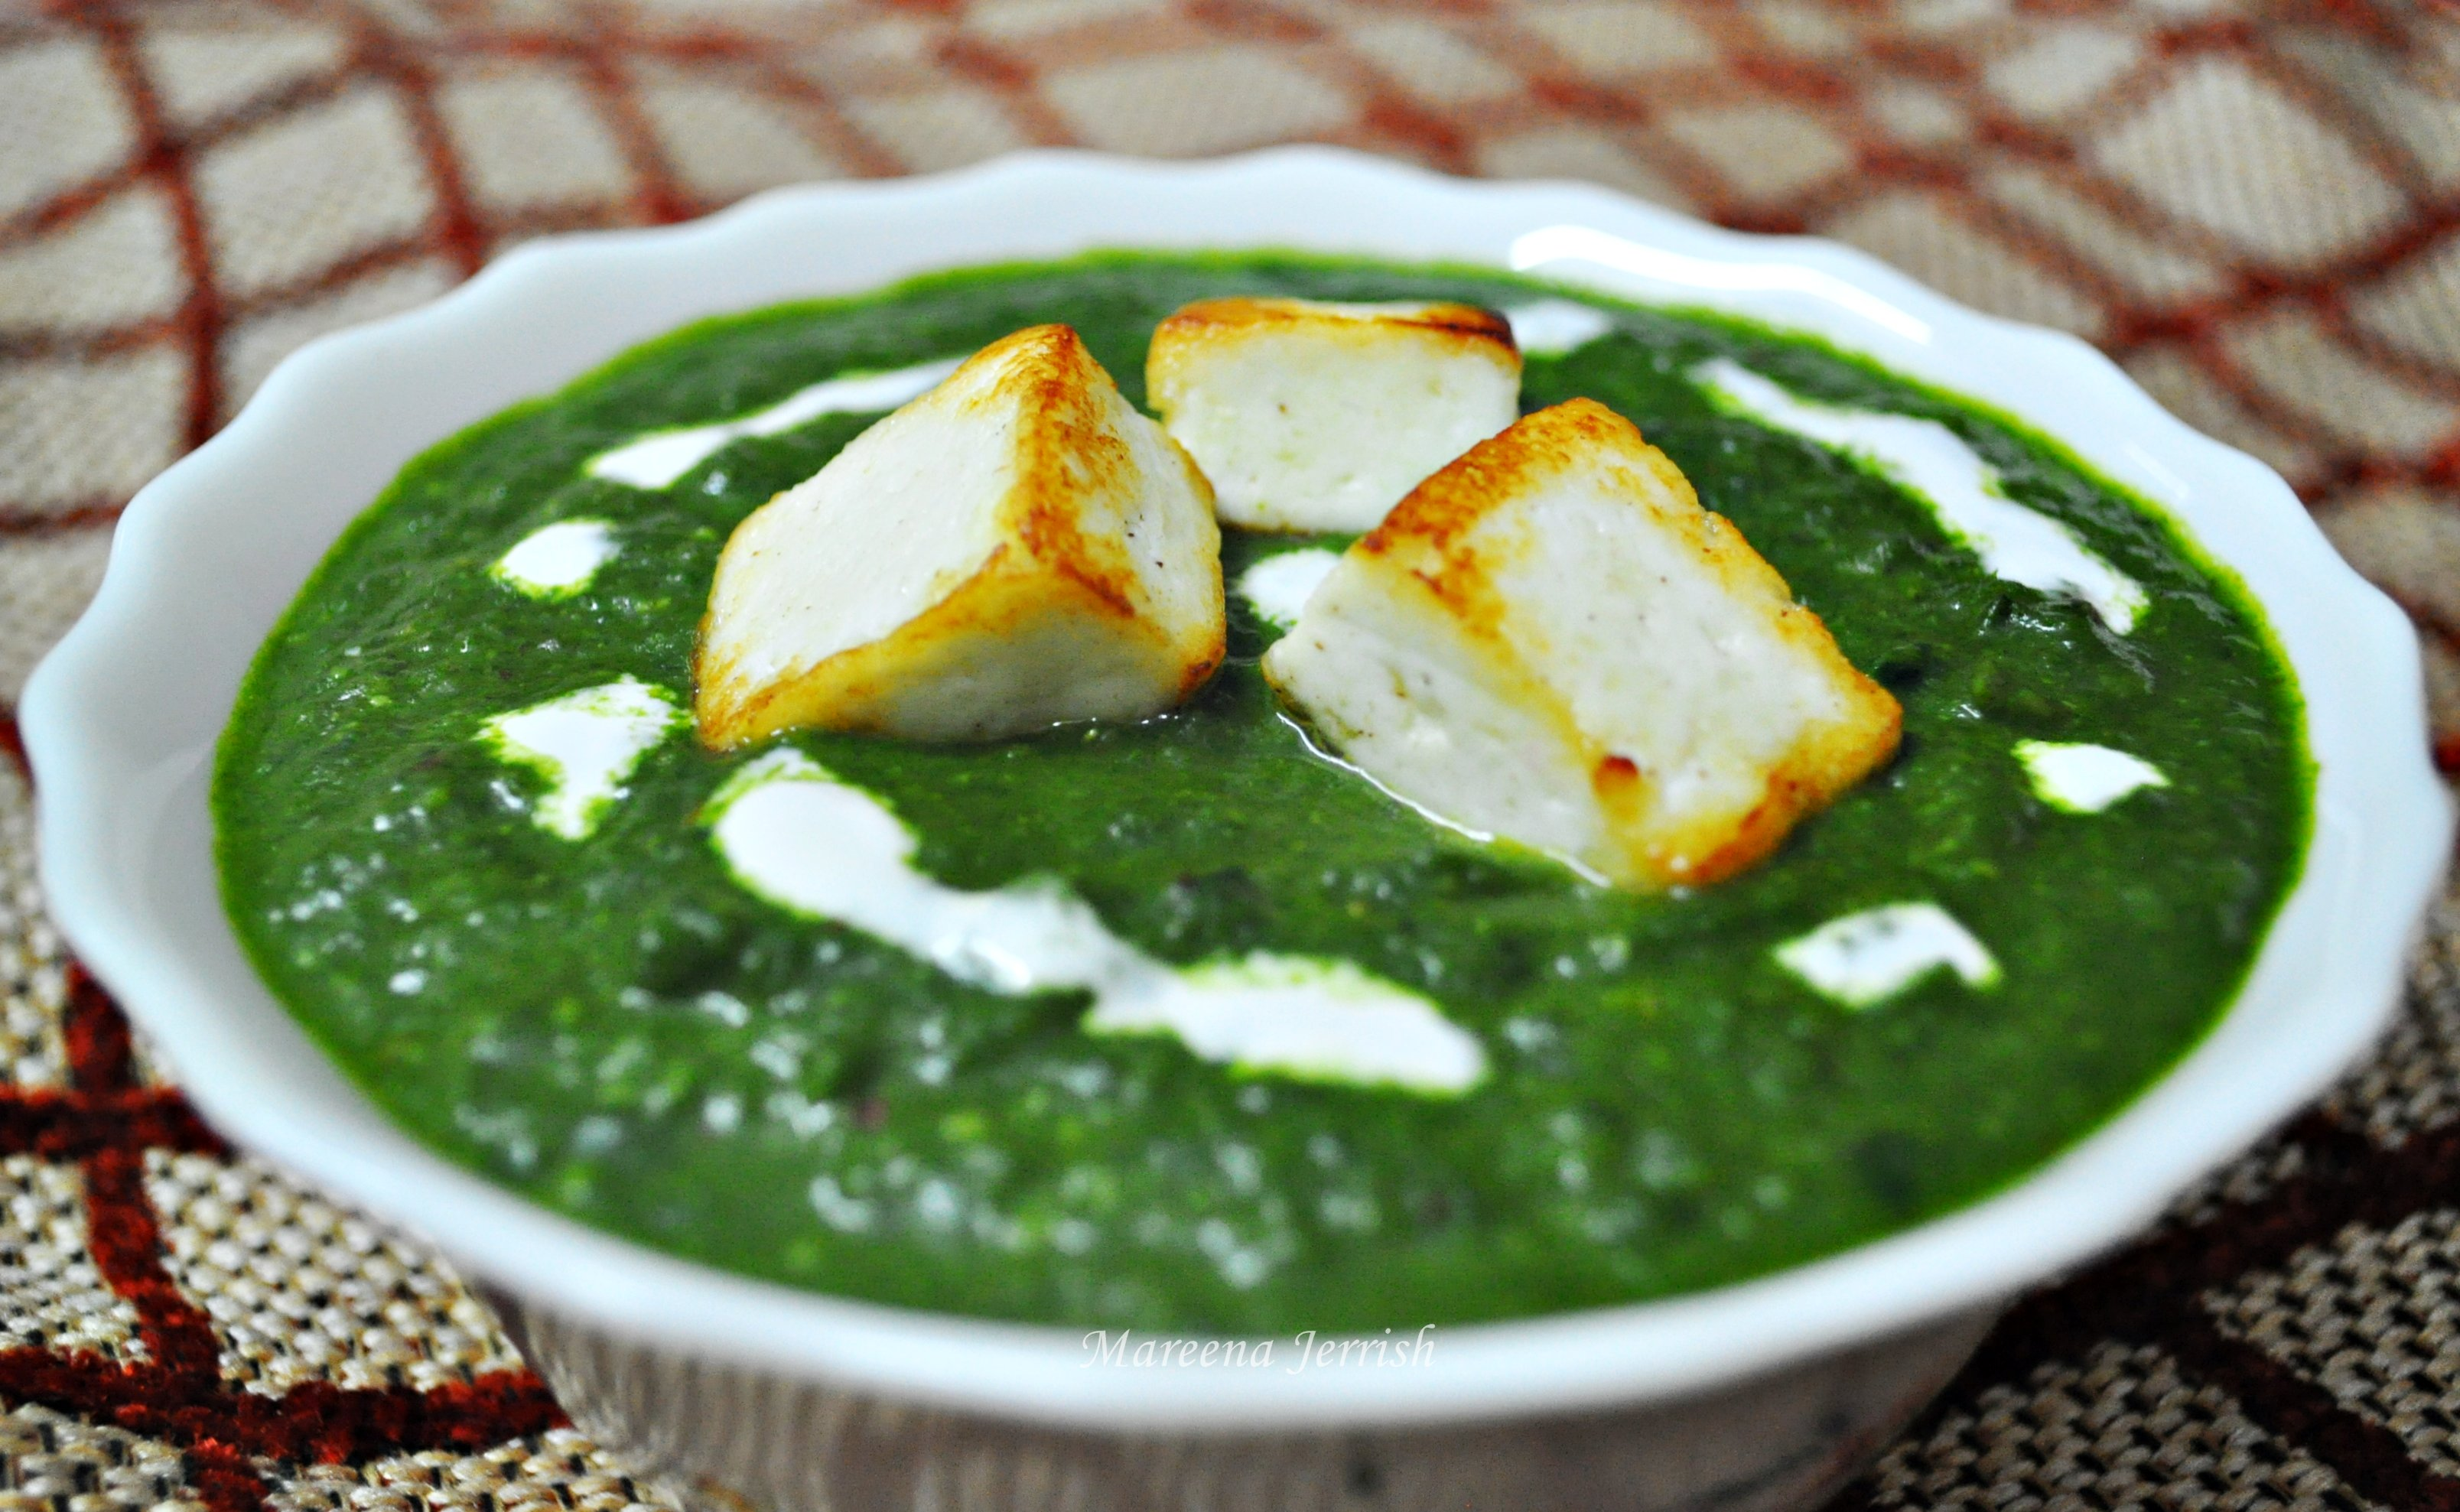 ... palak paneer ingredients 1 large bunch chopped spinach palak 1 2 cup